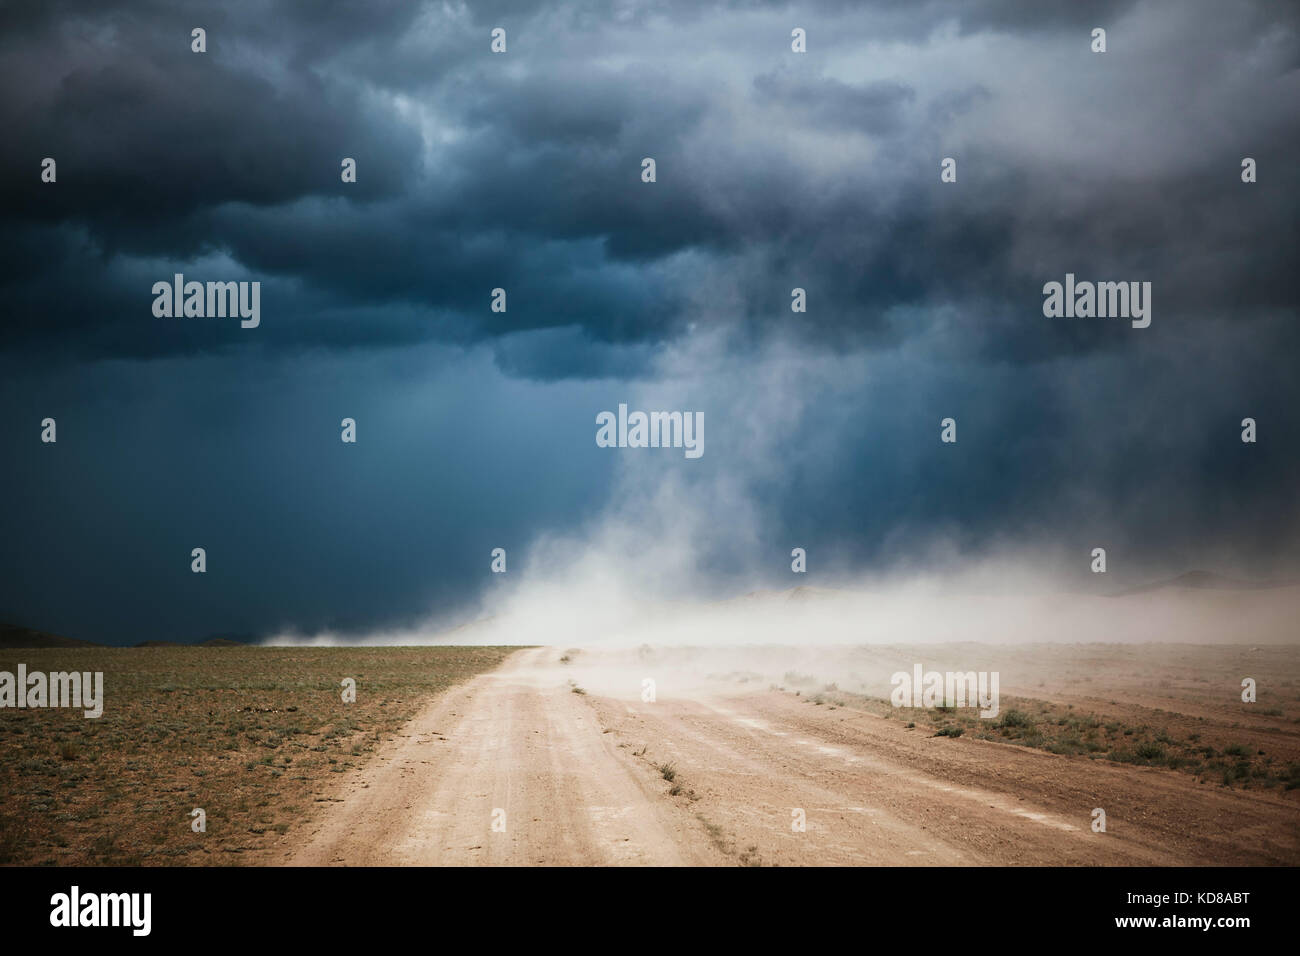 Dust Storm on a dirt road,Ulgii,Mongolia Stock Photo